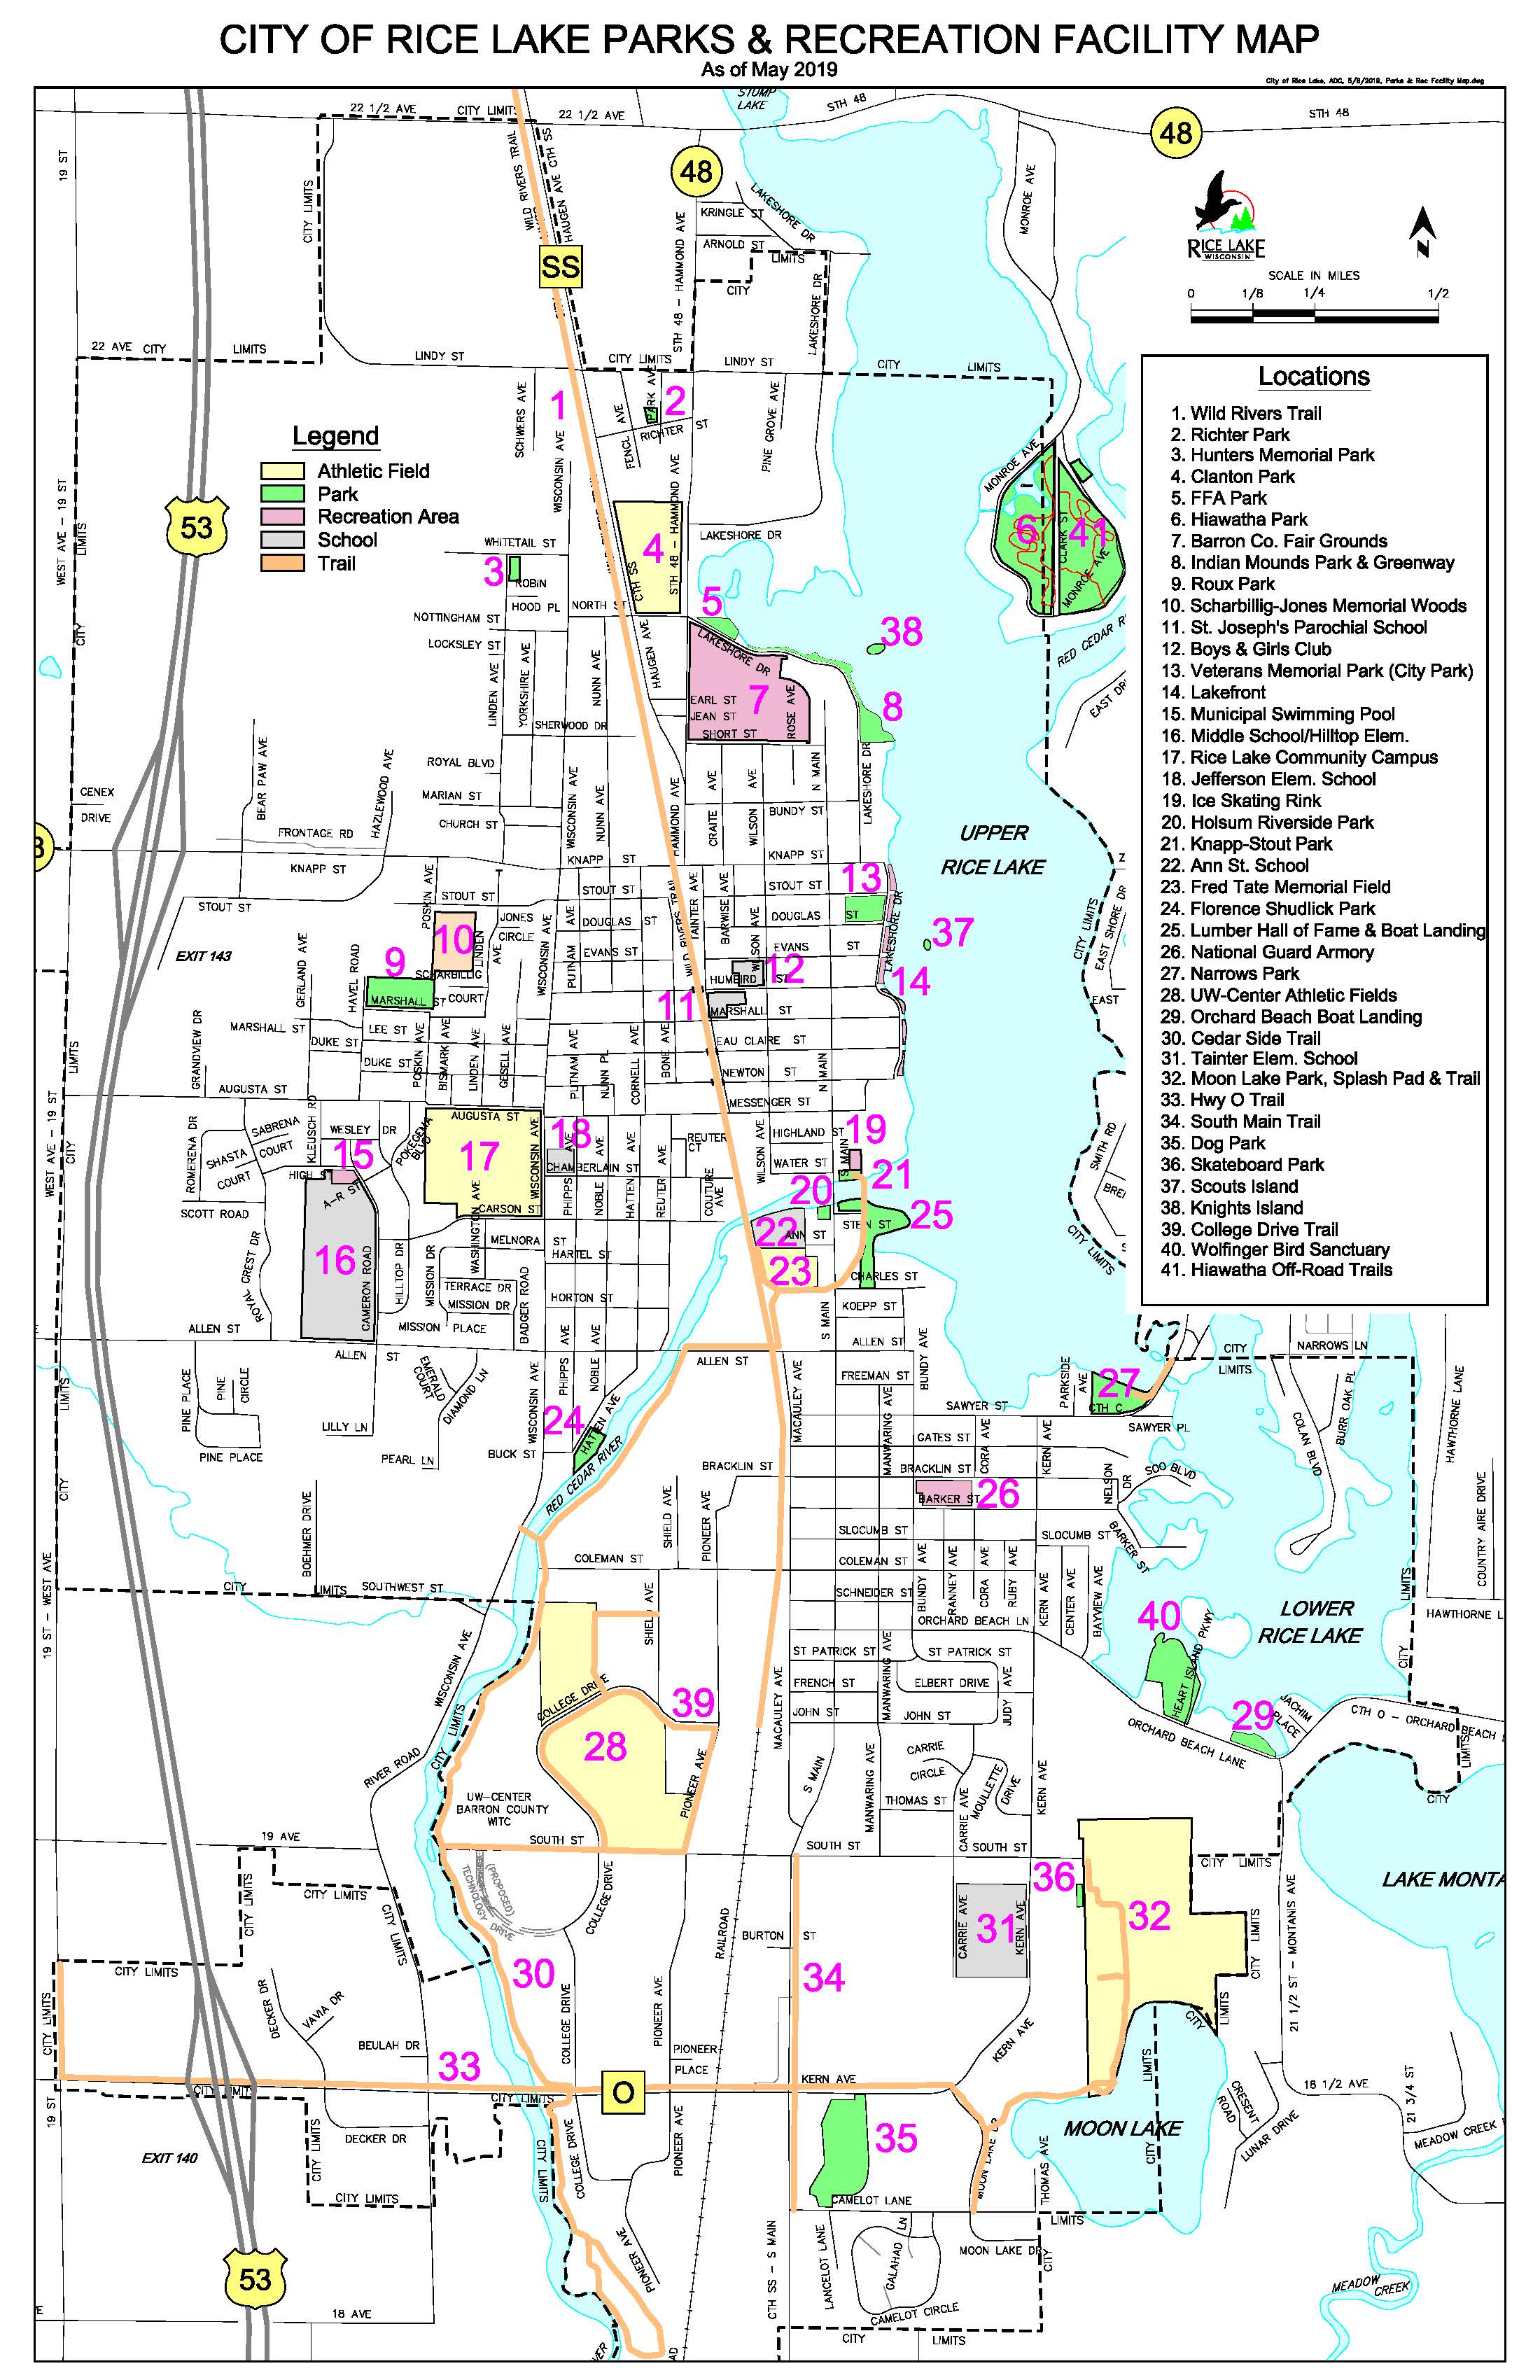 Parks Maps - CITY OF RICE LAKE on